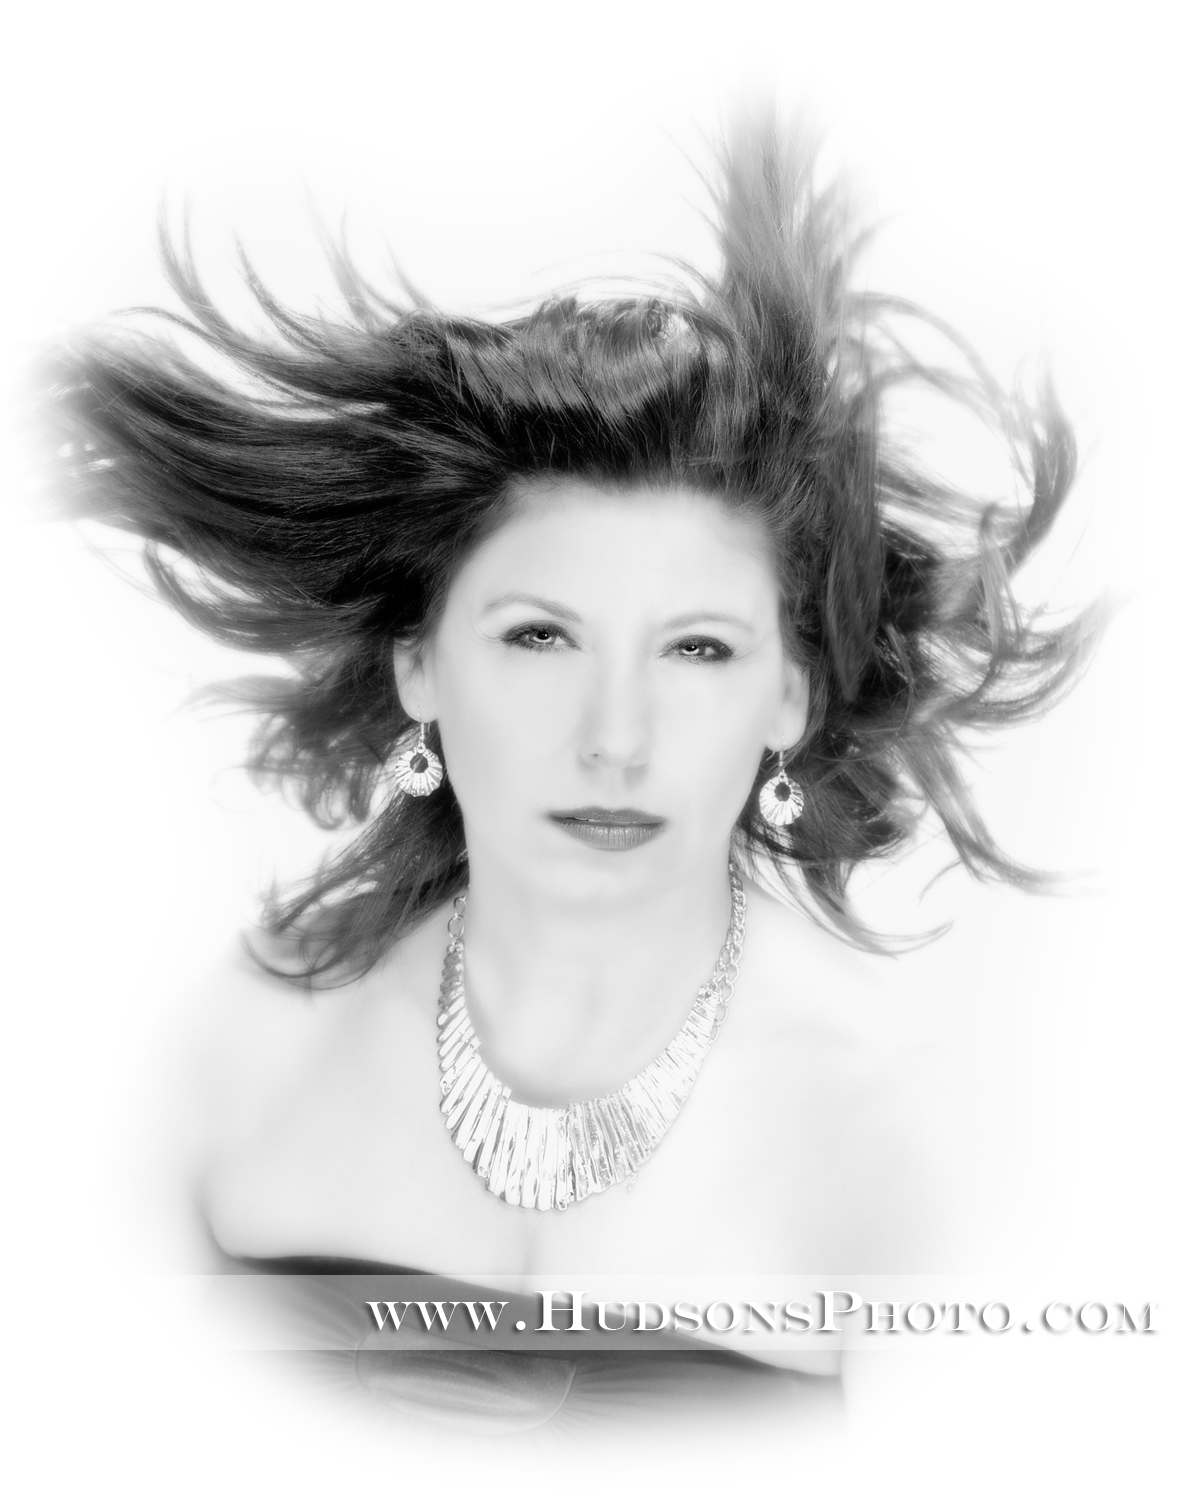 http://5thavenuess.com/wb/media/HUDSONS 2011/75_5th ave salon-bw-altered.jpg